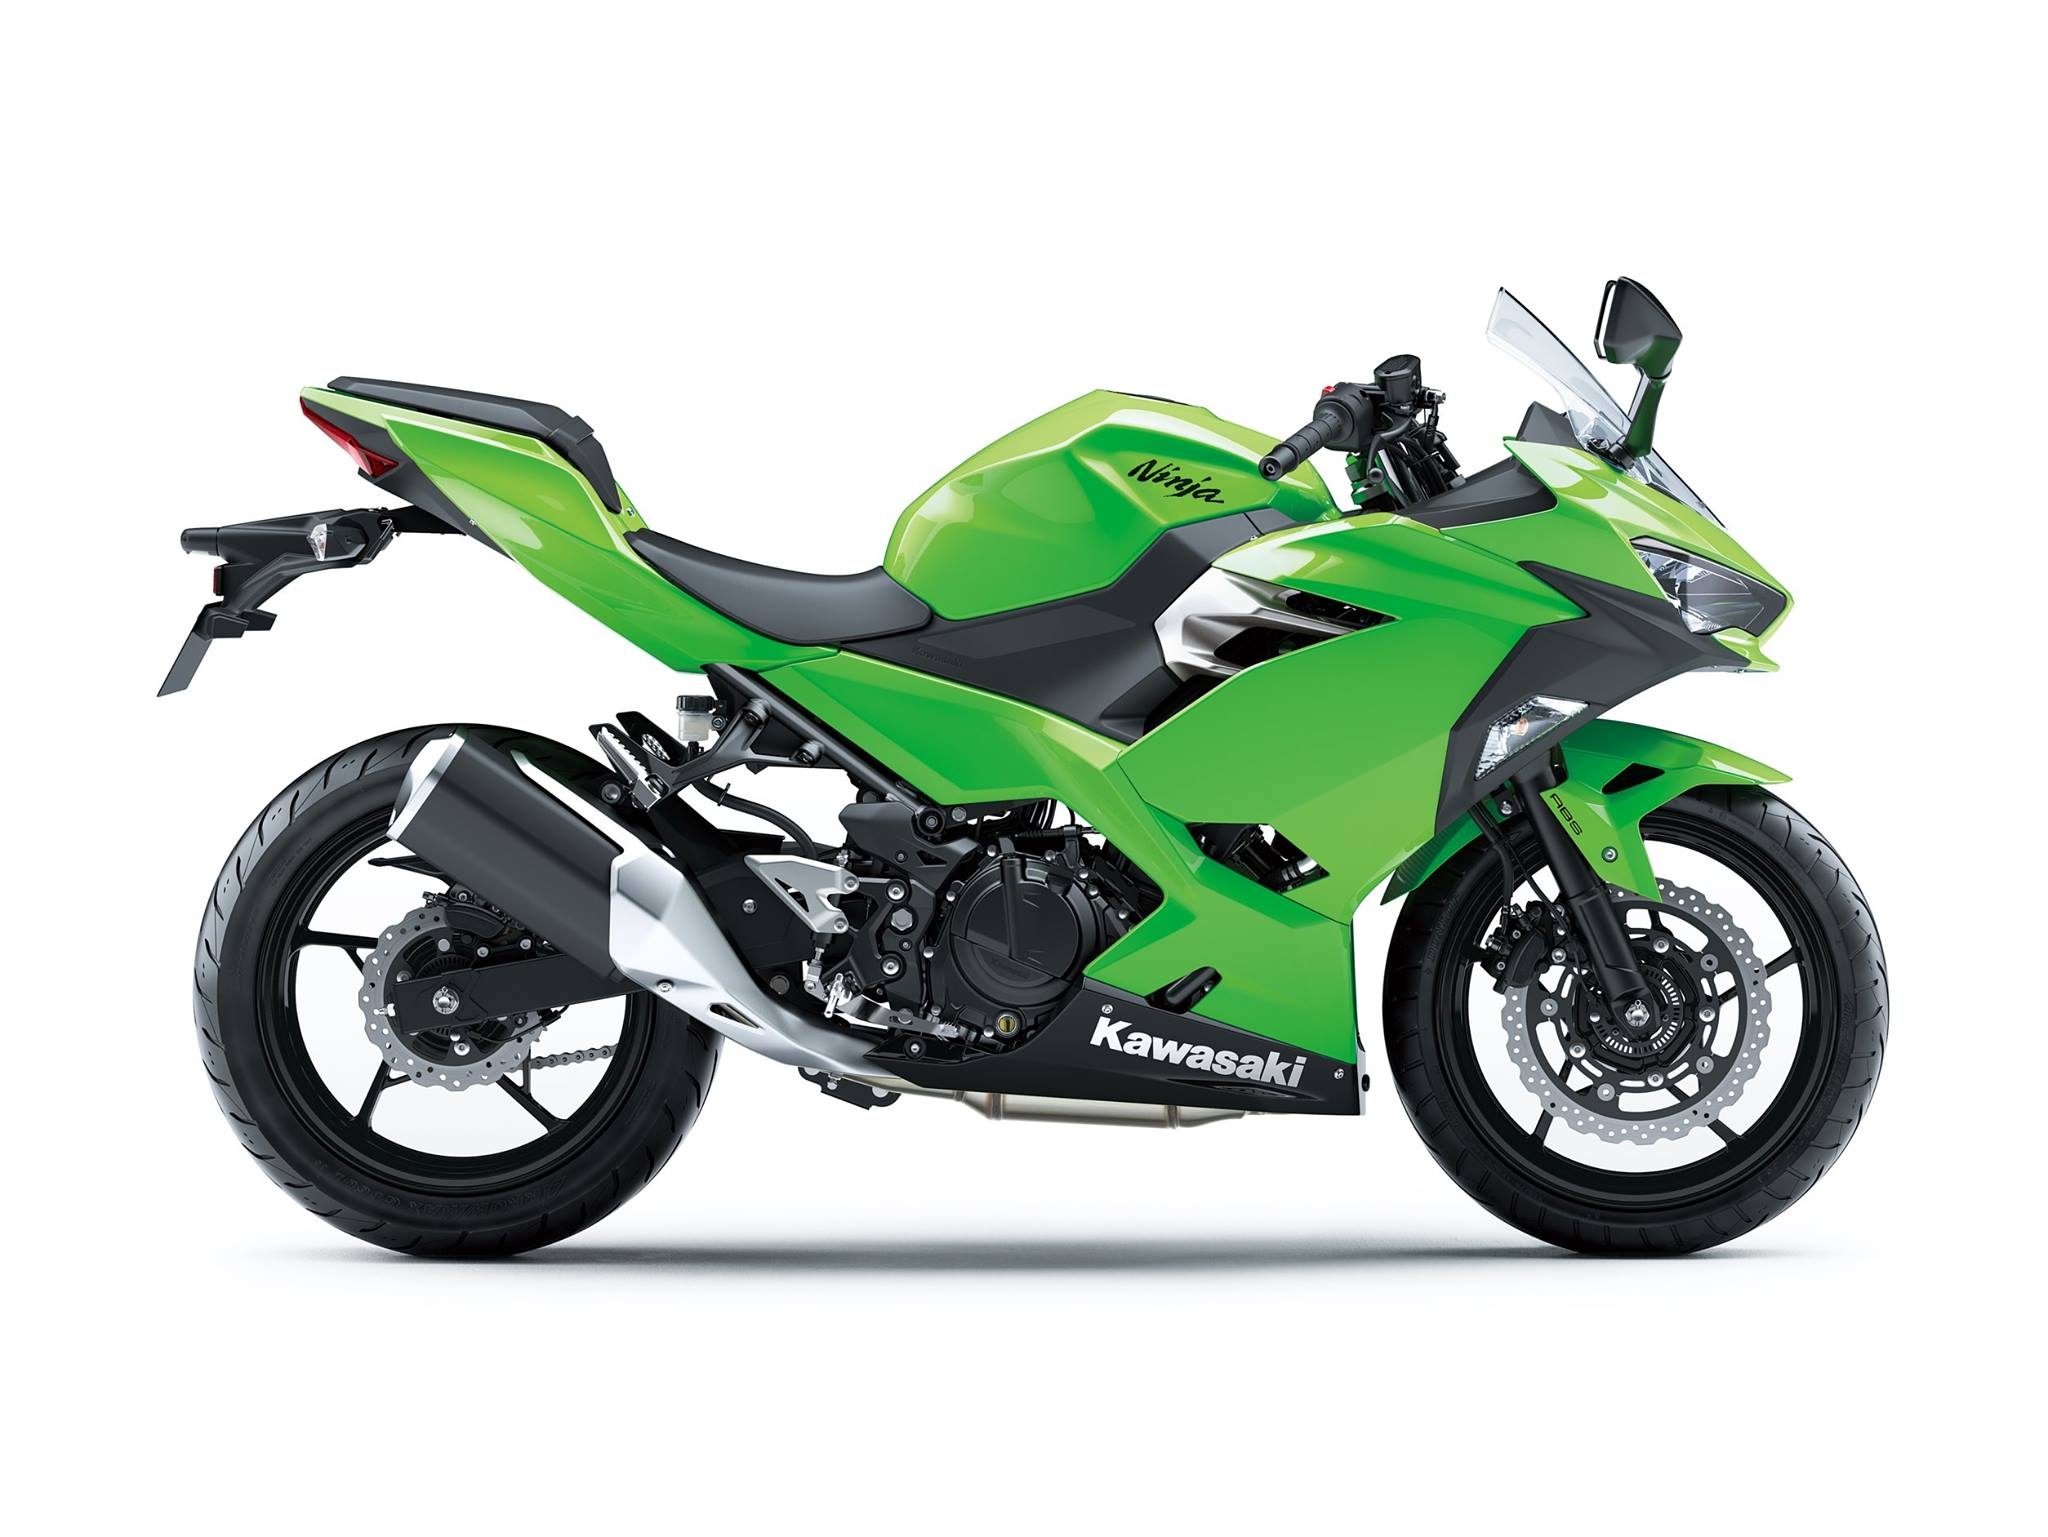 All New Kawasaki Ninja 250 FI Versi 2018 Warna Hijau Polos 1 p7